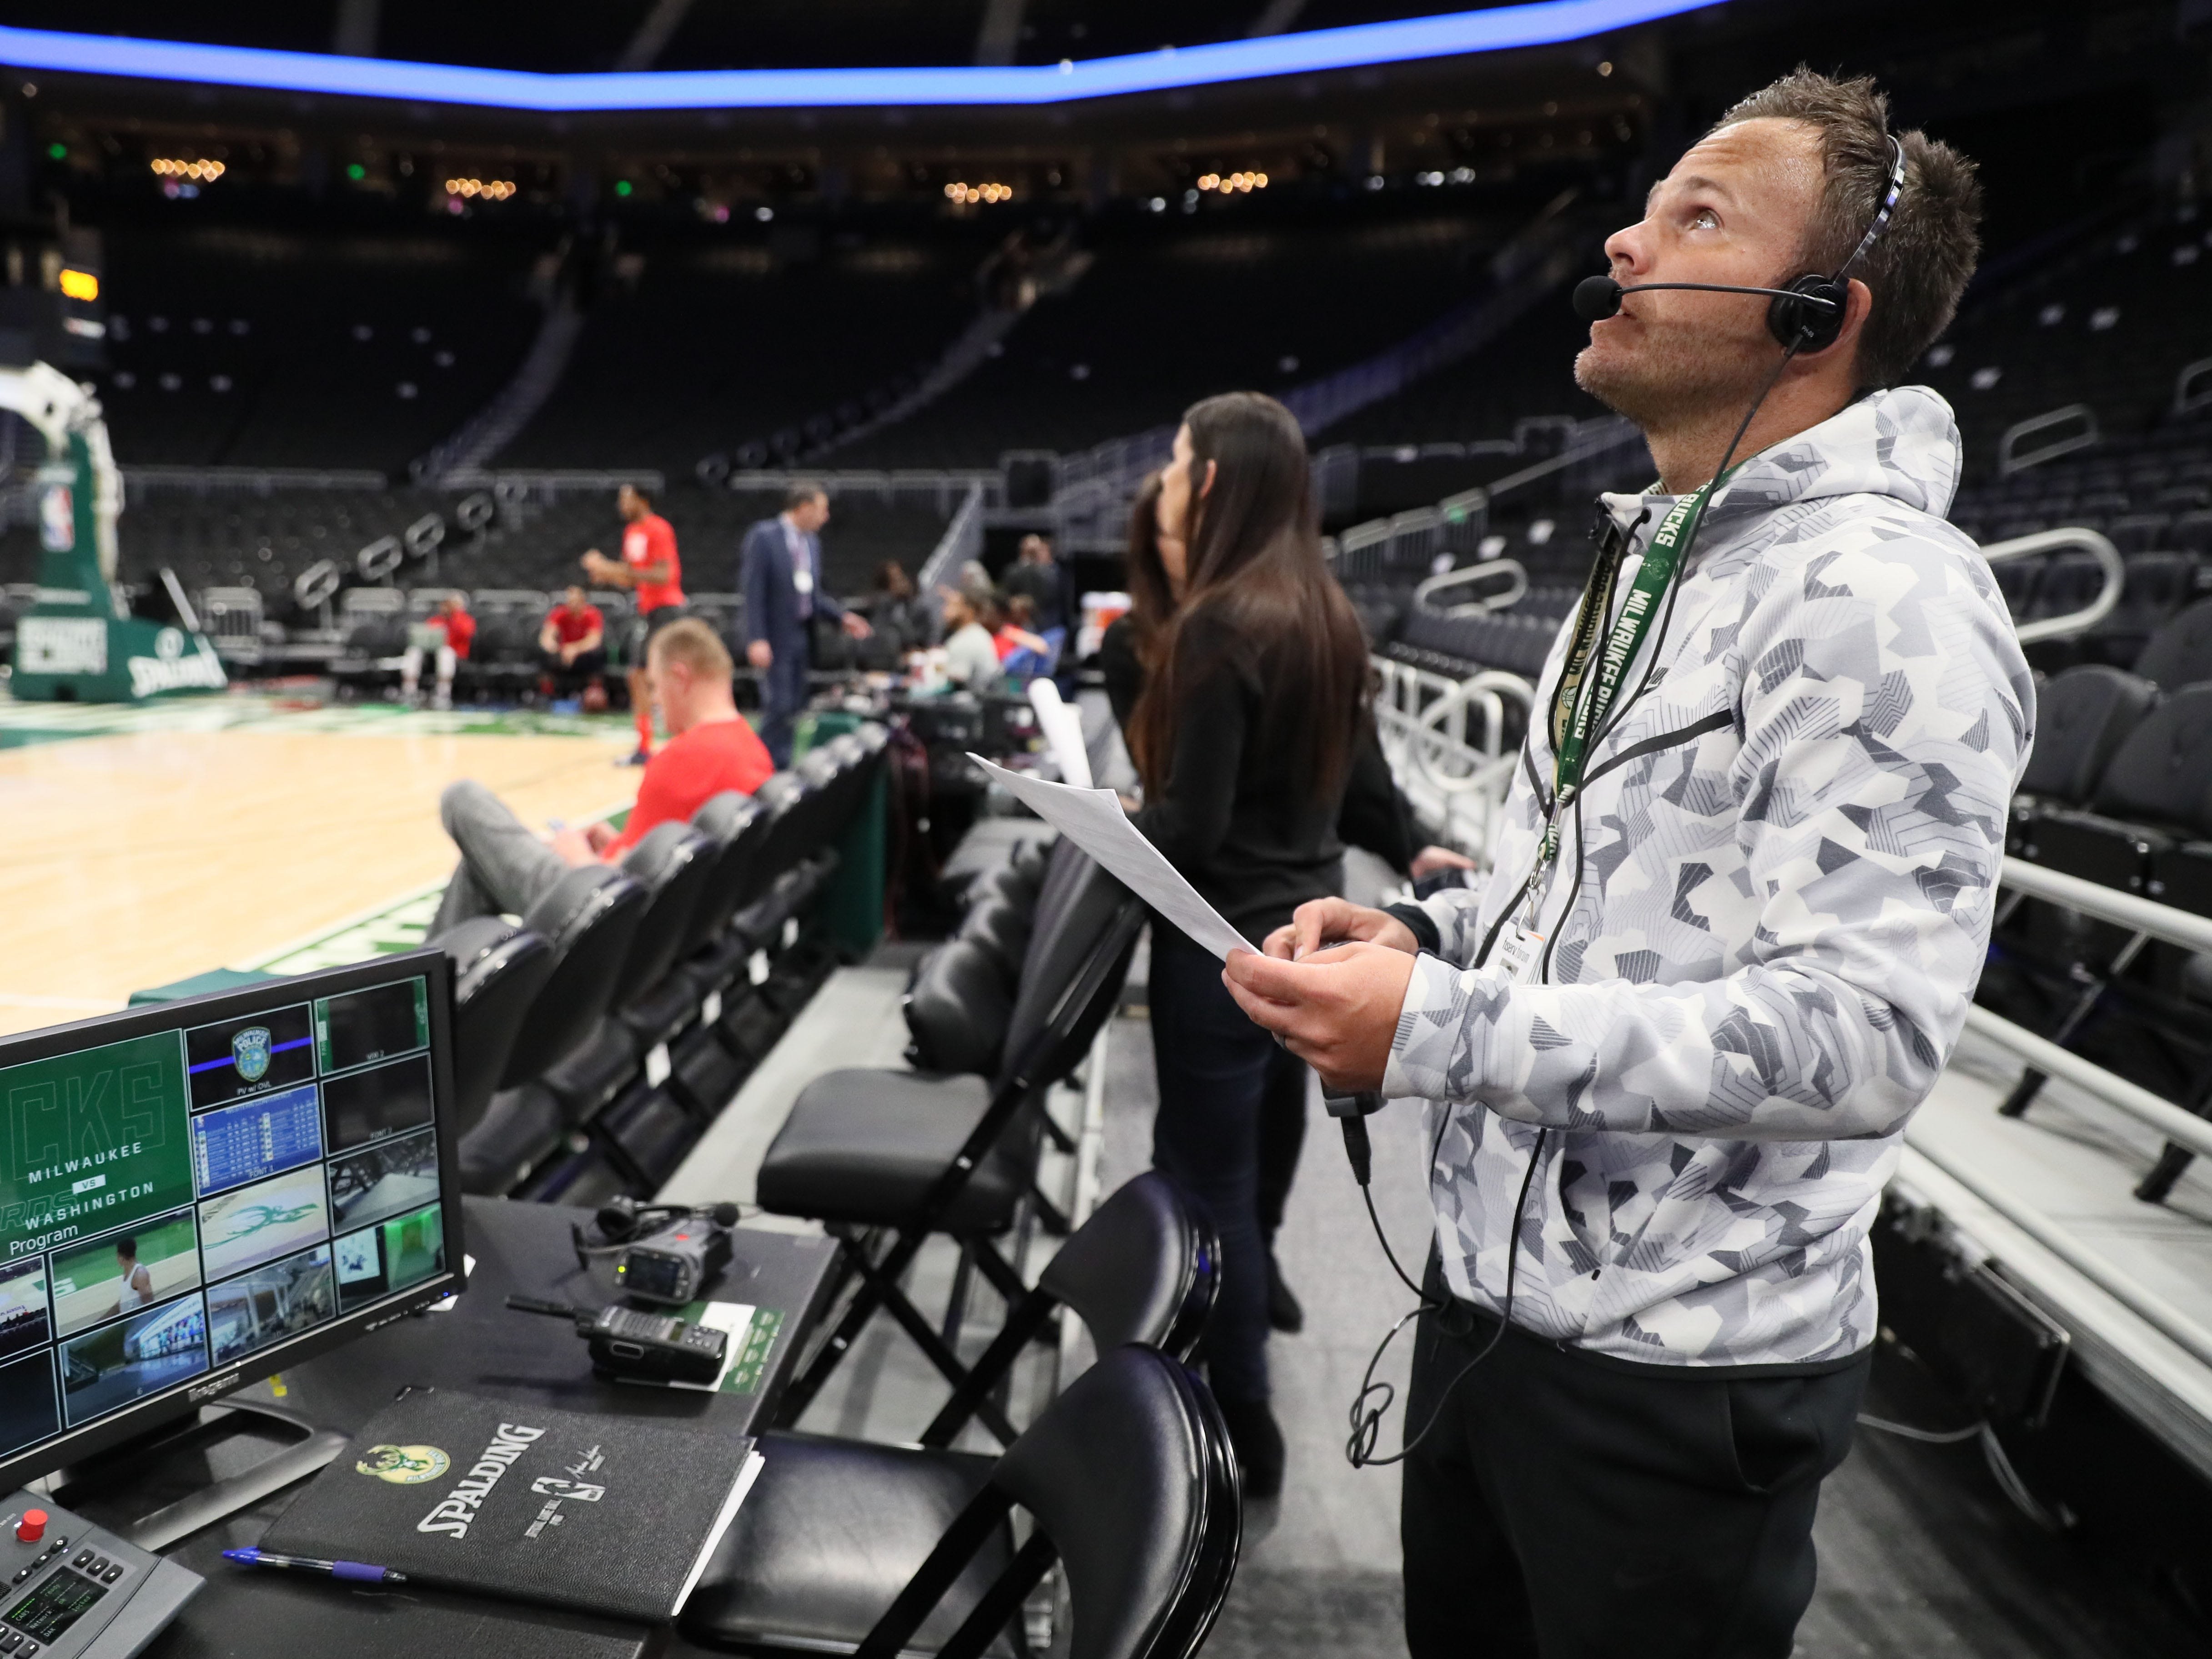 johnny Watson, the Milwaukee Bucks'  director of live programming and entertainment, goes over cues on the scoreboard with the control room team before the Bucks game against the Washington Wizards on Feb. 6. Watson's job is to make sure fans are entertained during breaks in the action and build excitement that Bucks players can feed off.